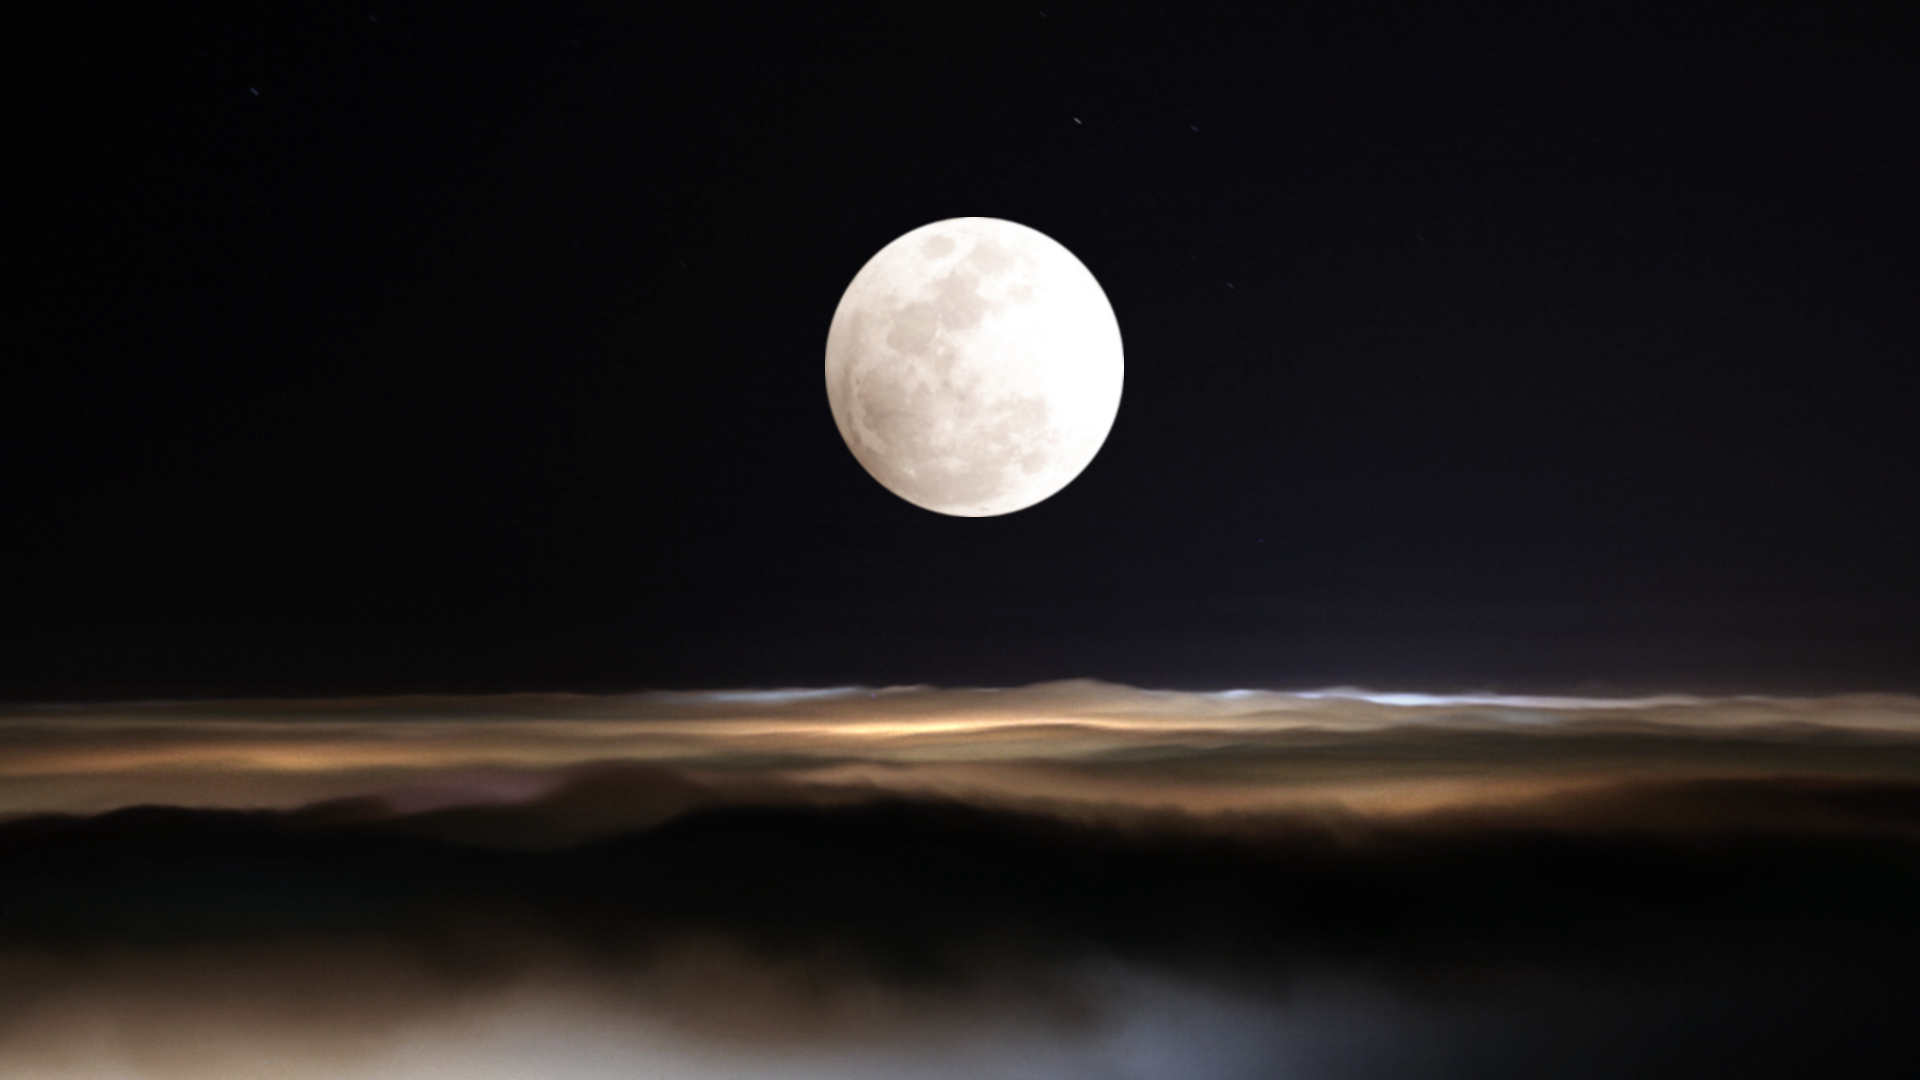 Full Moon Night HD Wallpaper And Background Image